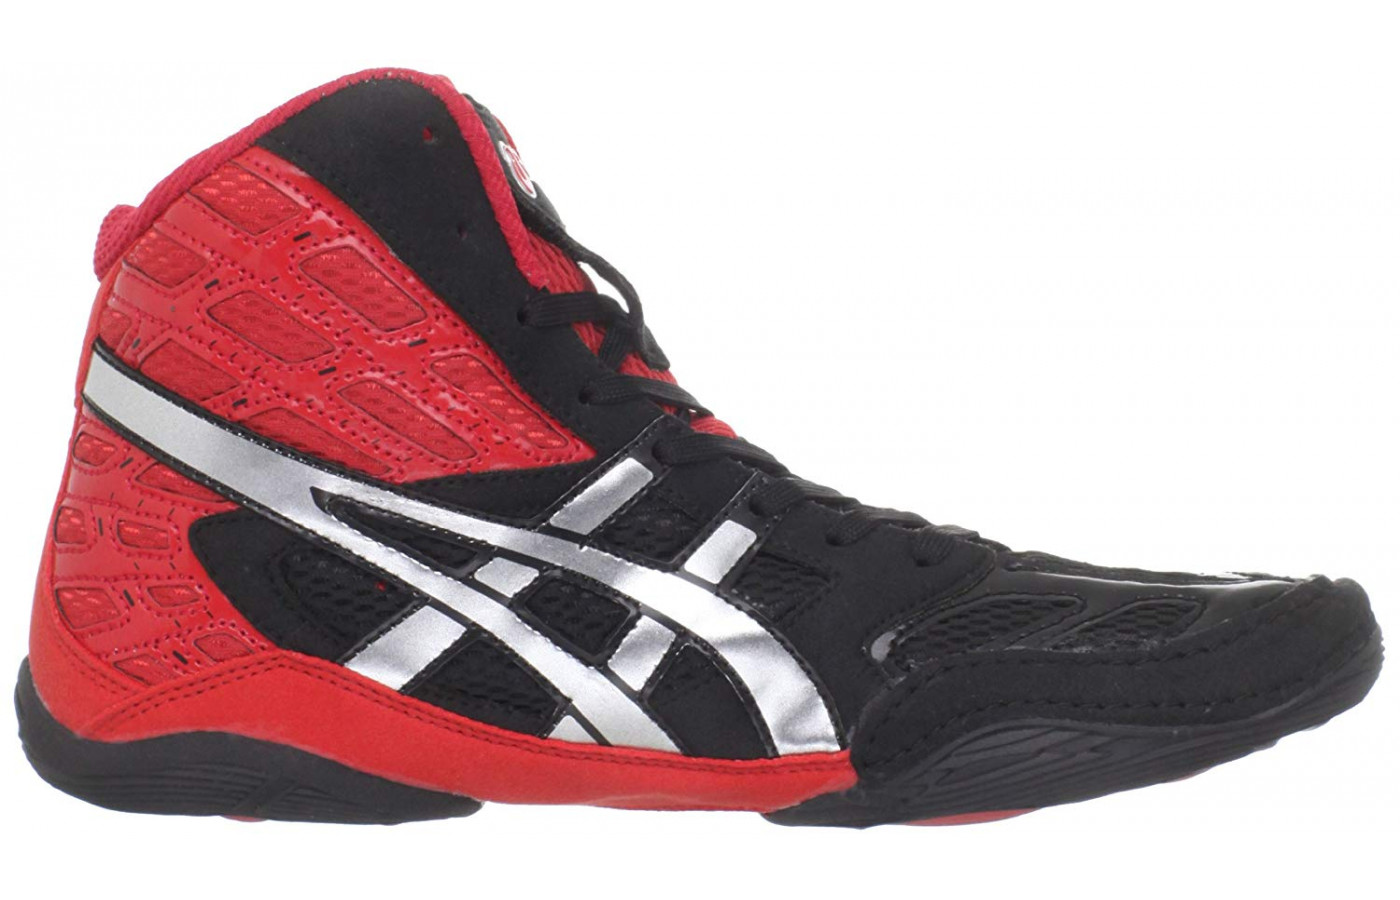 ASICS Split Second 9 Side